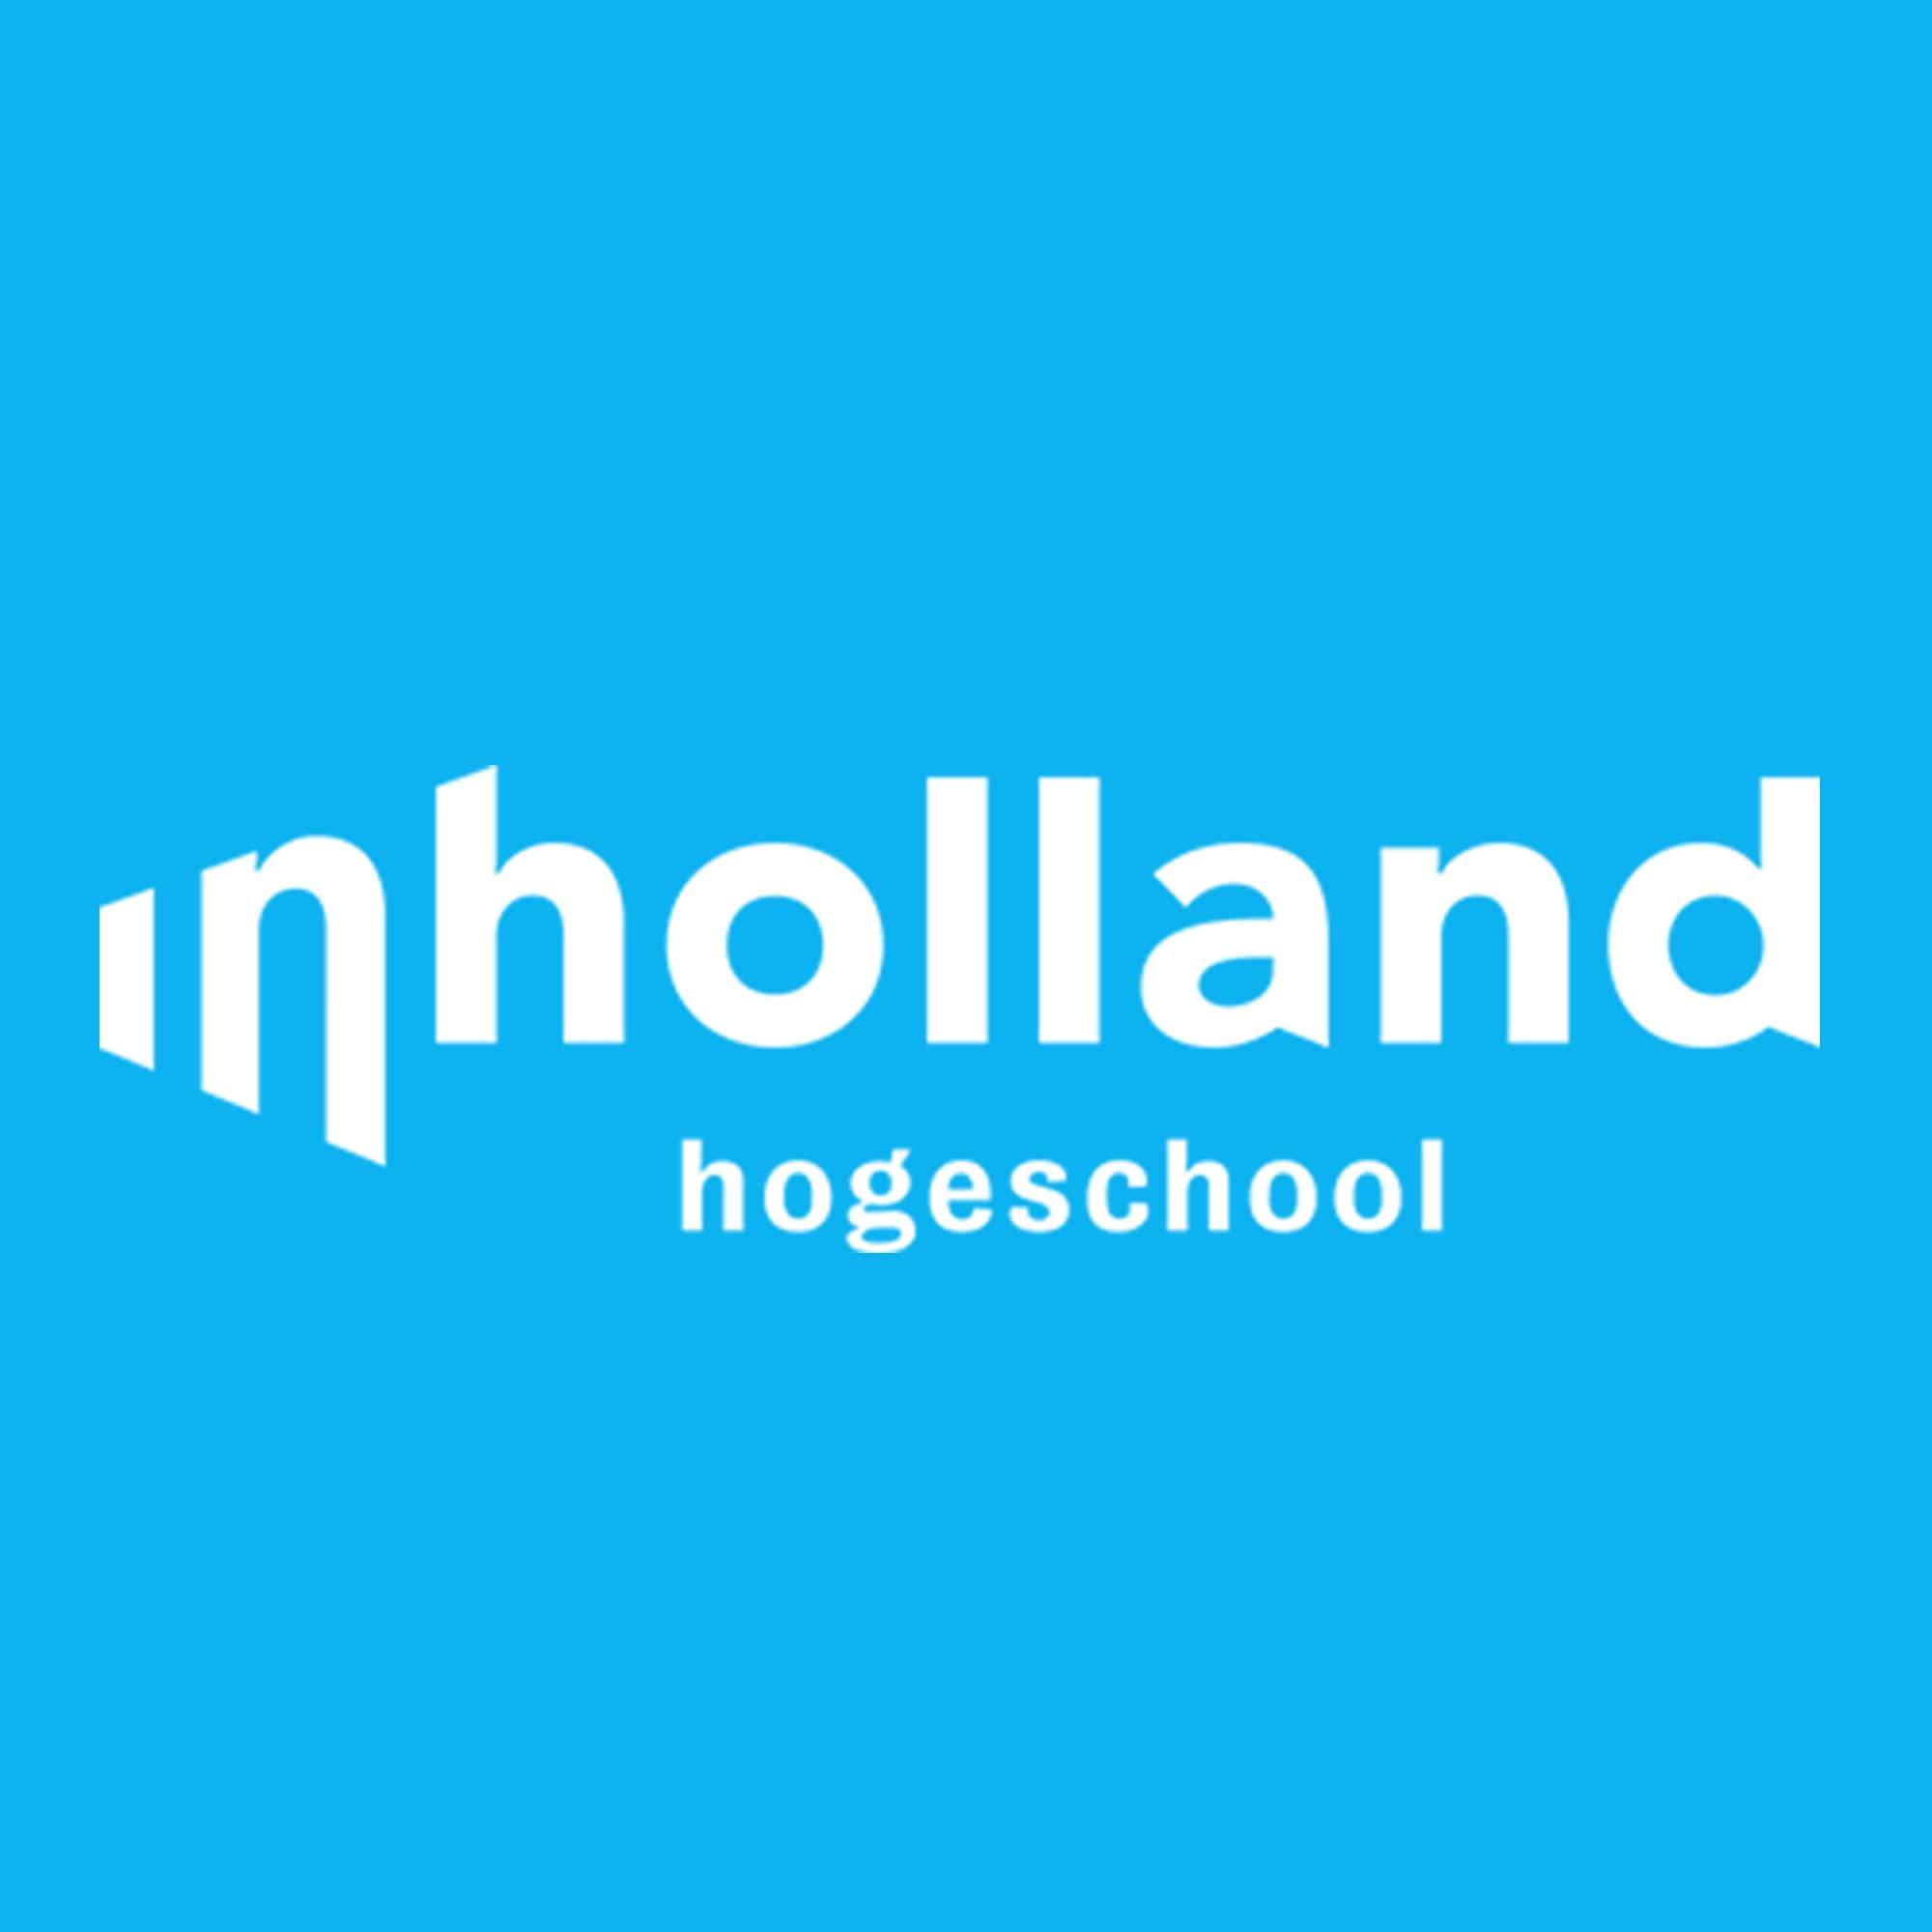 Inholland-online-marketing-bureau-webdevelopment-haarlem-made-marketing-5